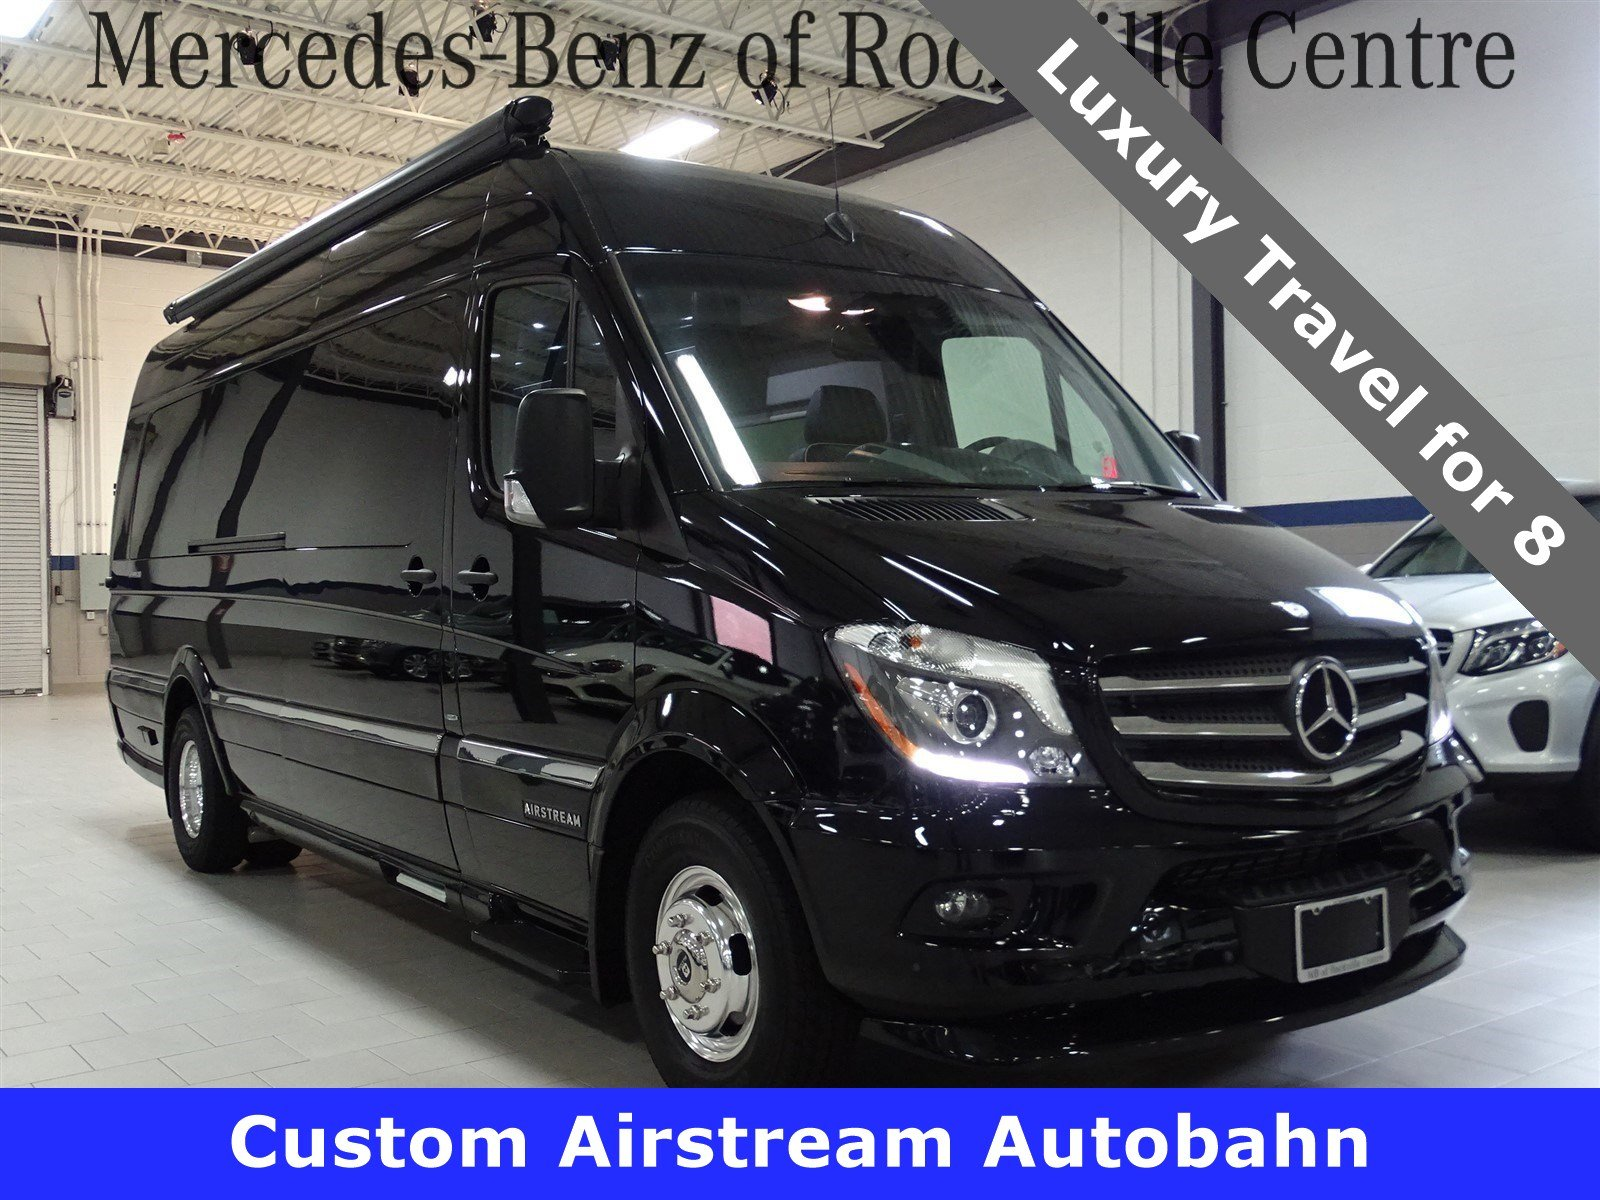 New 2015 mercedes benz sprinter airstream autobahn ext van for New mercedes benz sprinter